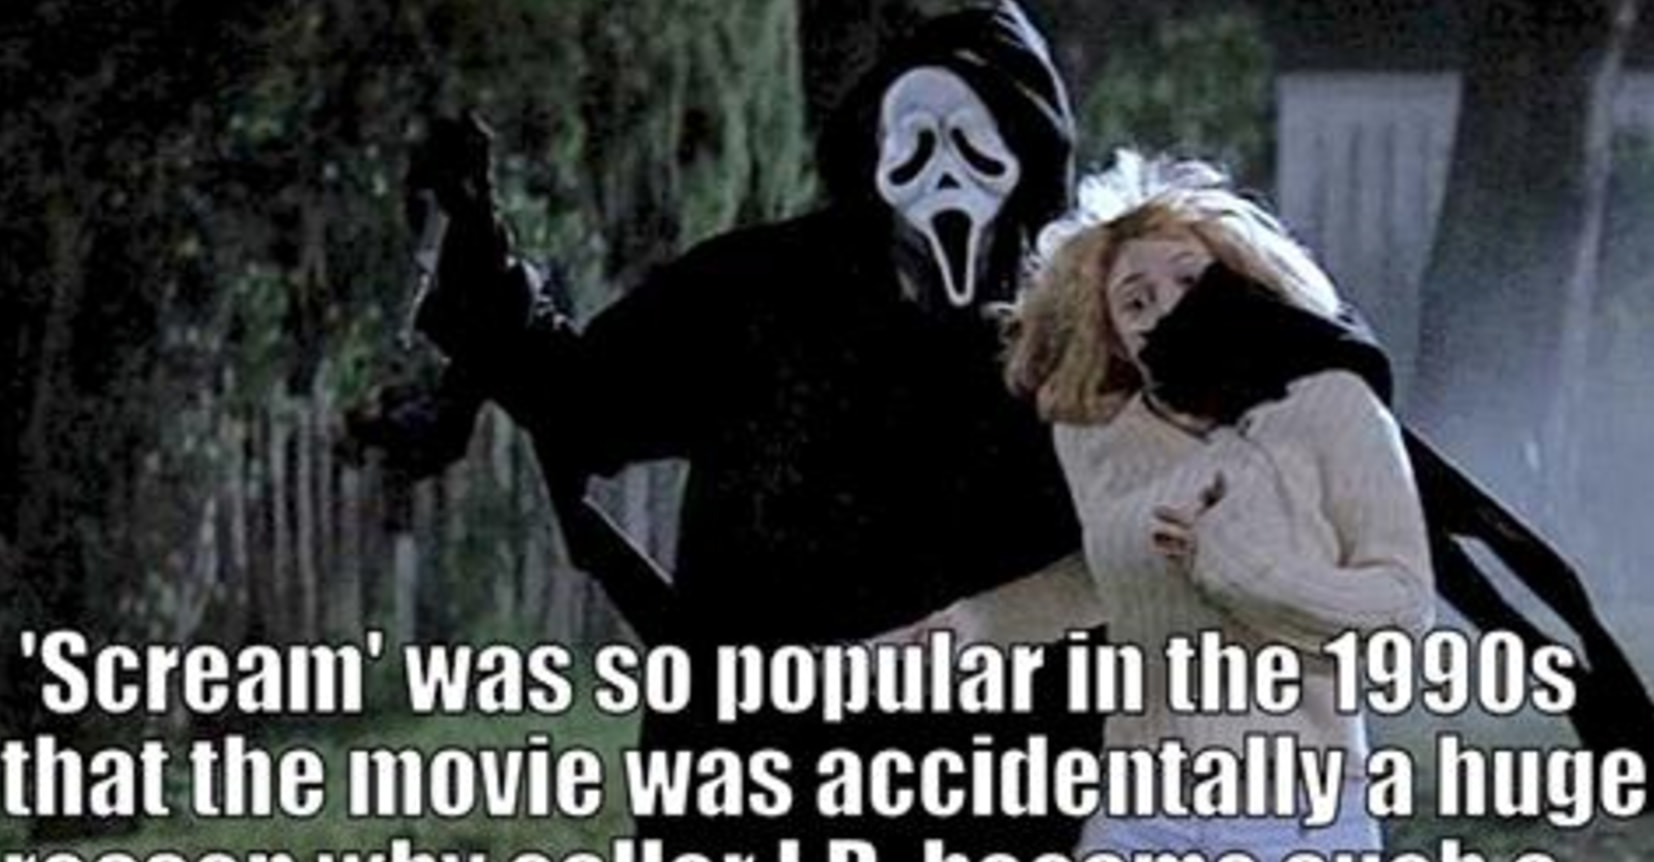 11 Messed-Up True Facts About The 'Scream' Movies